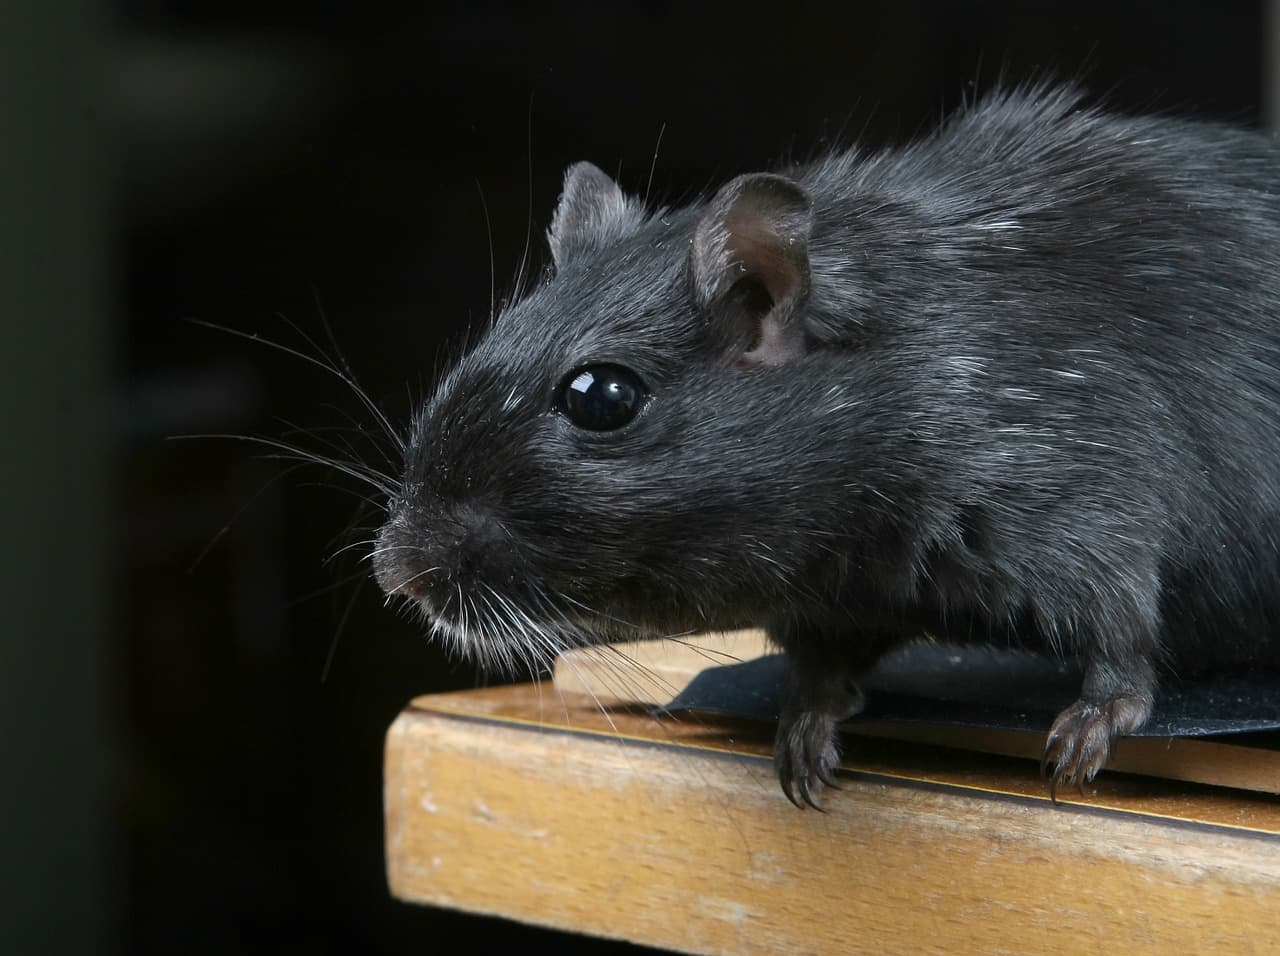 a black rat on the edge of a table